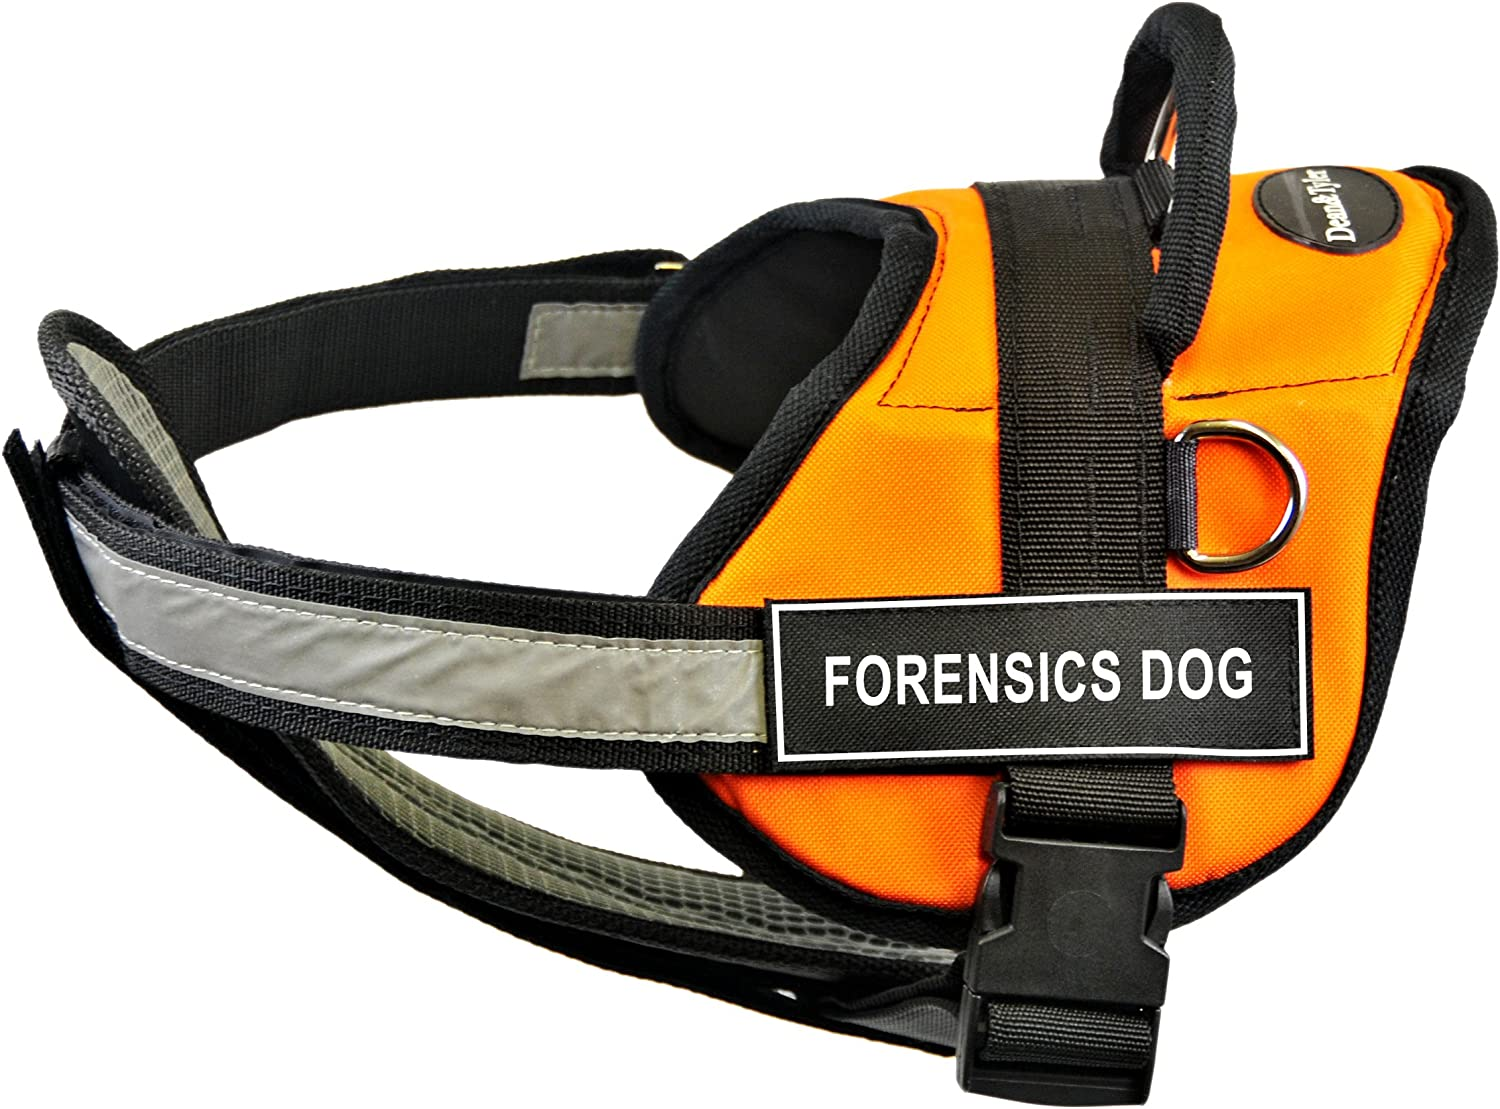 Dean & Tyler 21Inch to 26Inch Forensics Dog Harness with Padded Reflective Chest Straps, XSmall, orange Black